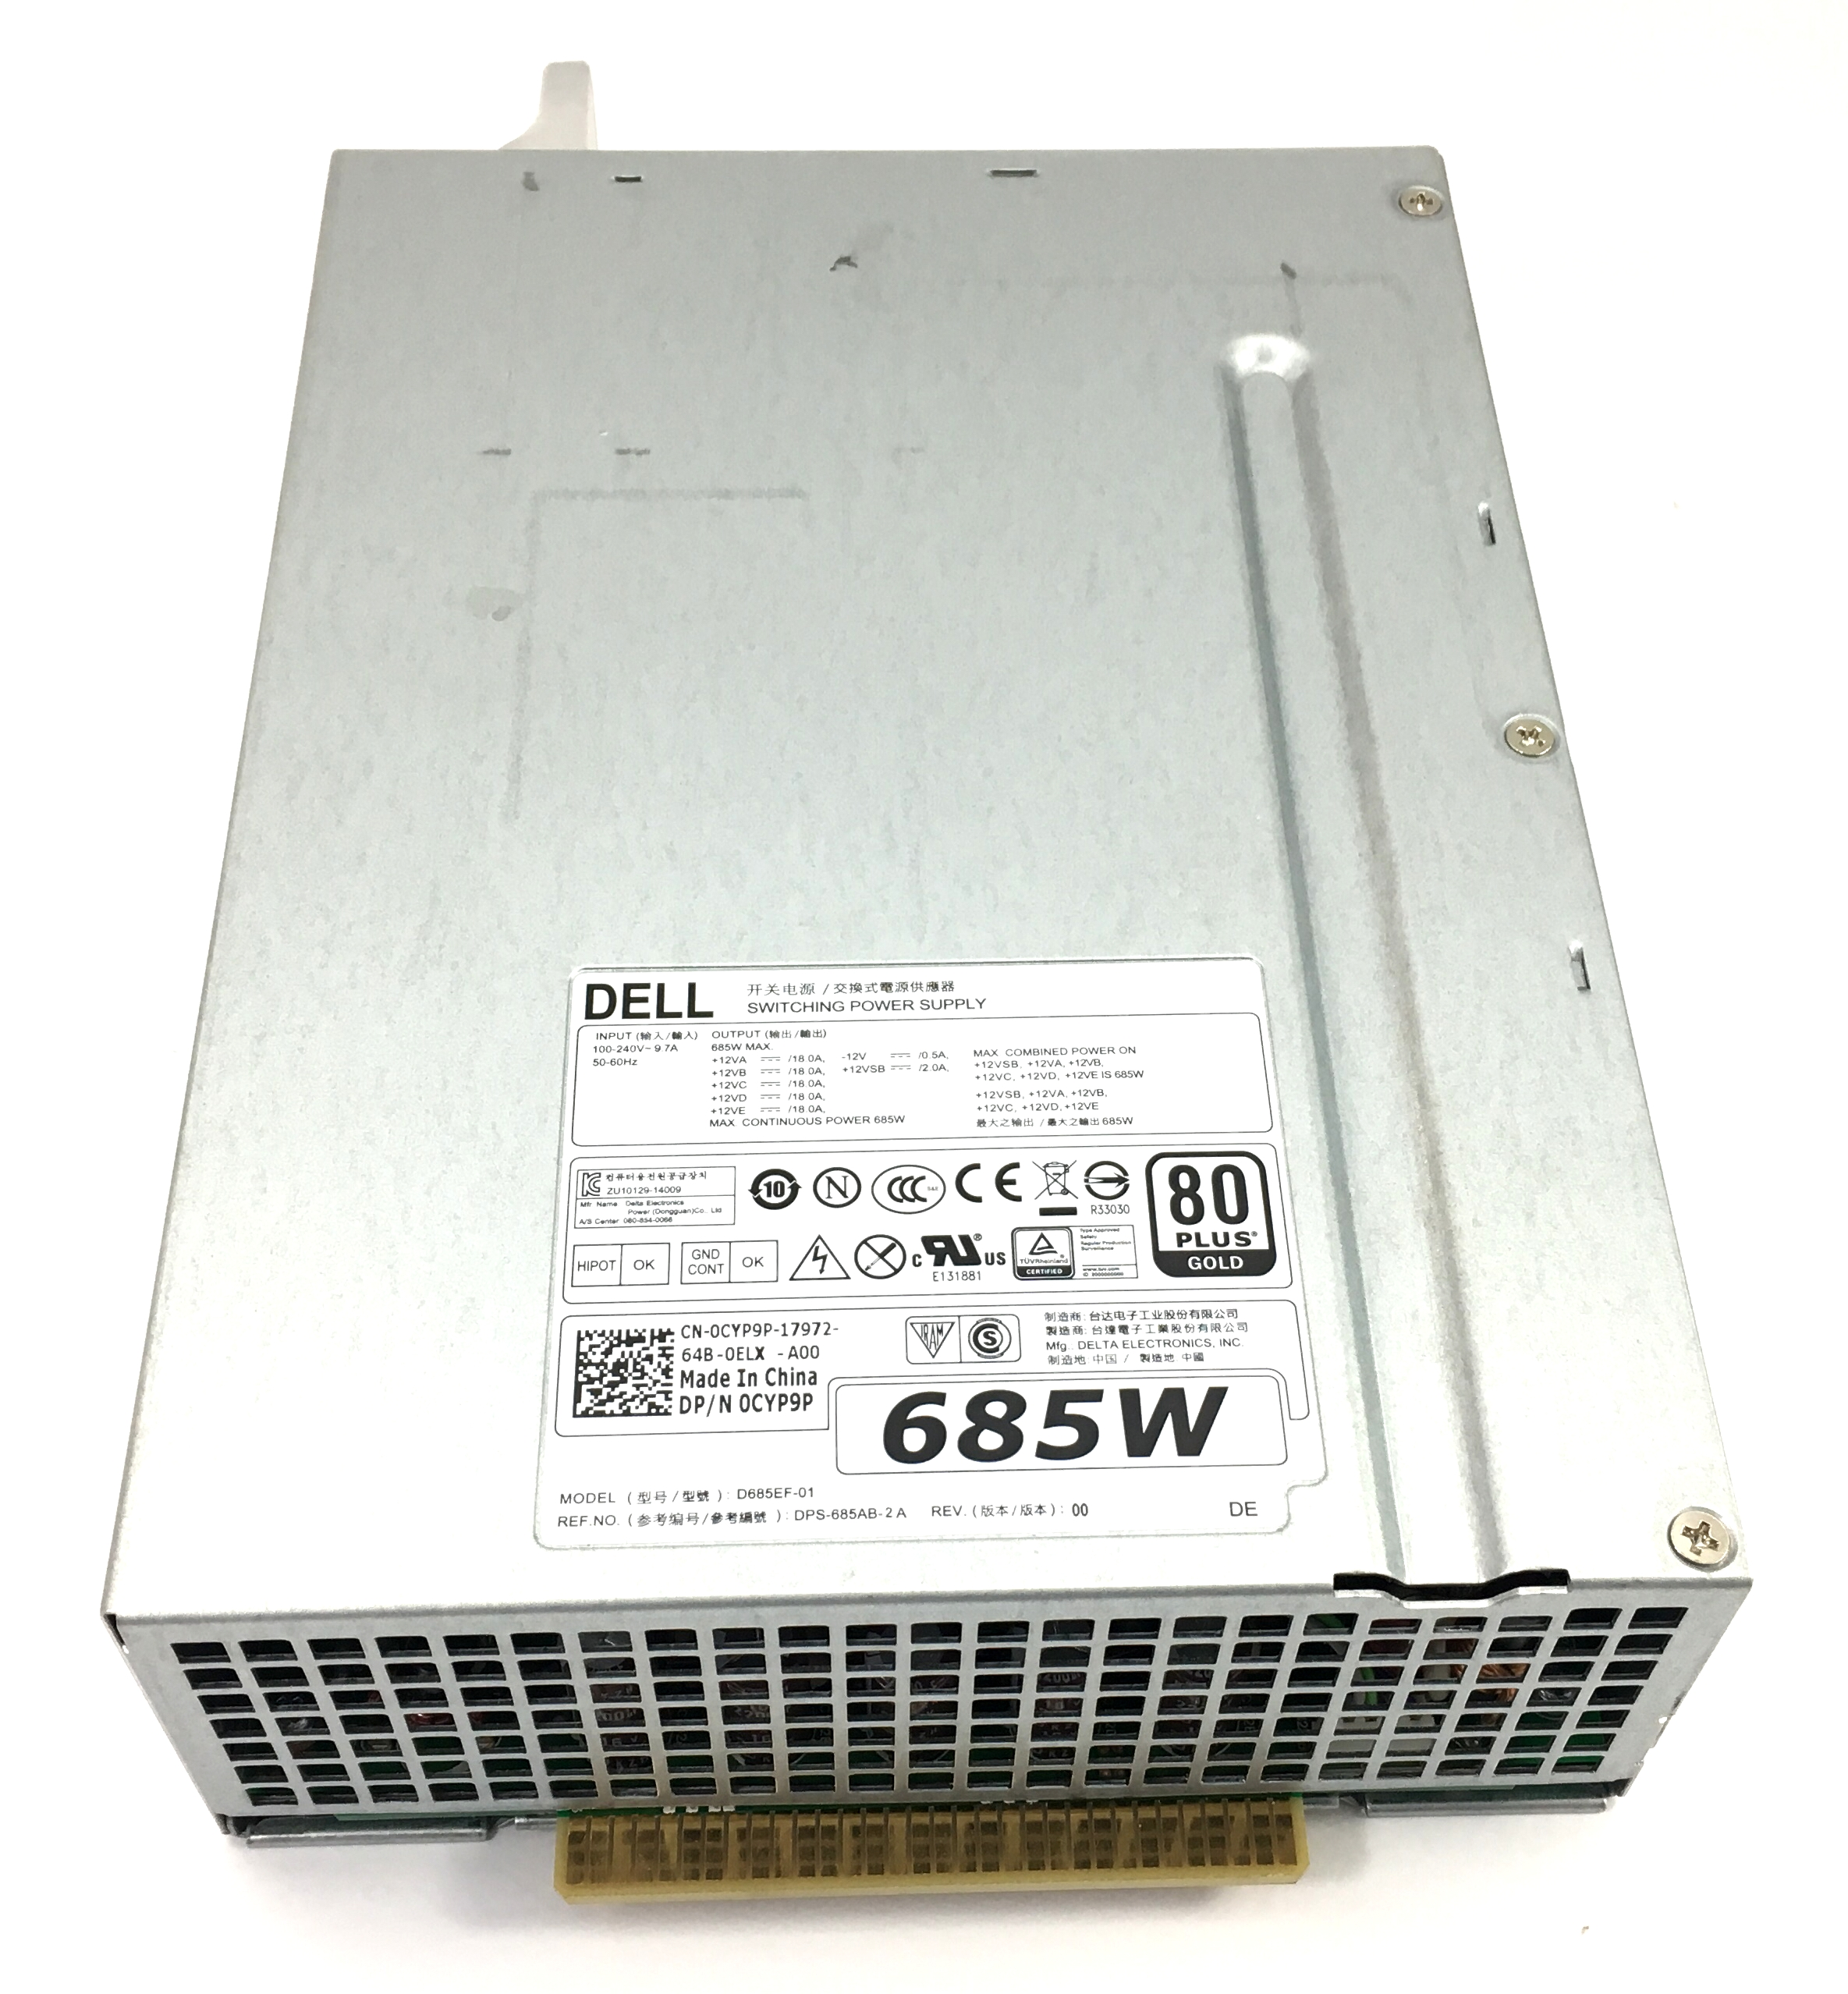 Dell D685Ef-01 650W Switching Power Supply (CYP9P)